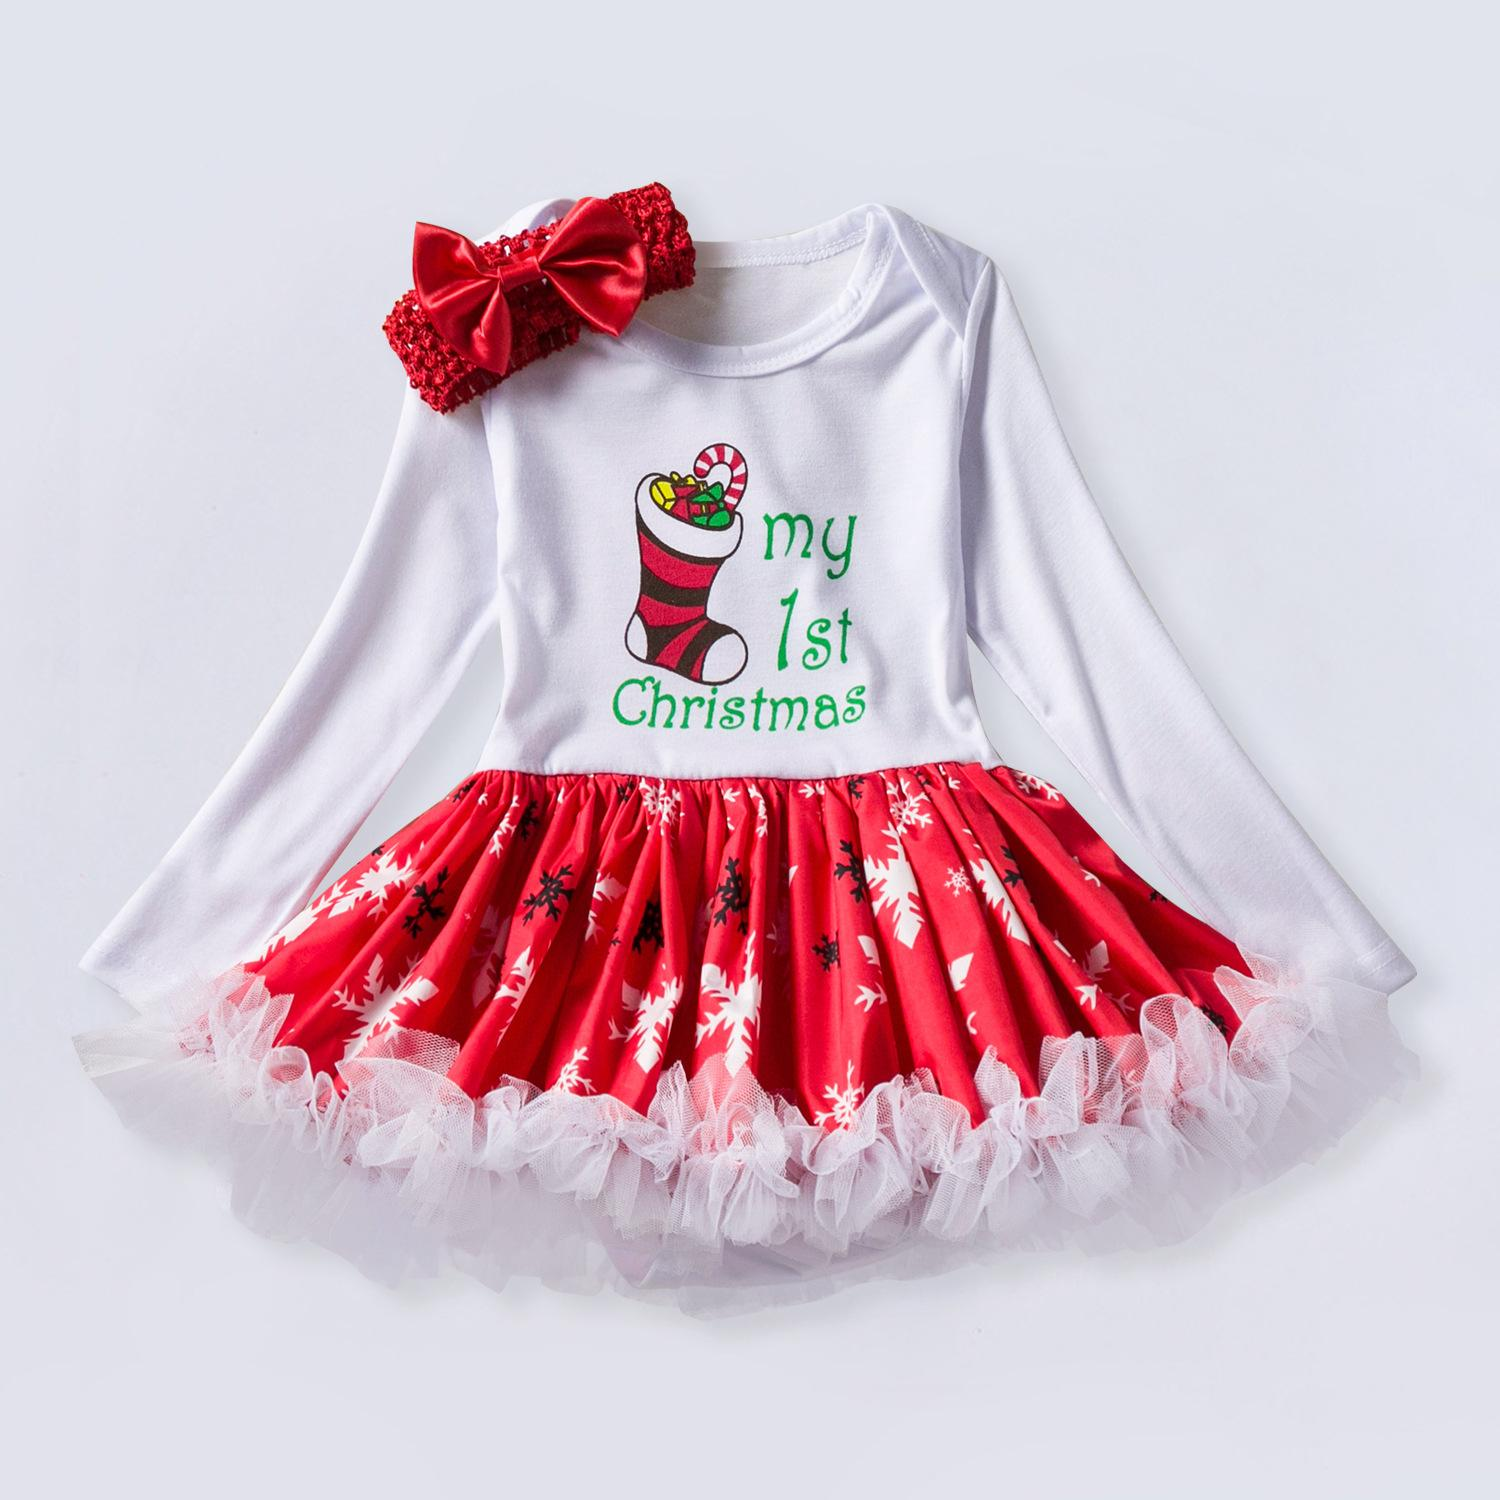 2019 year look- Christmas Infant dresses